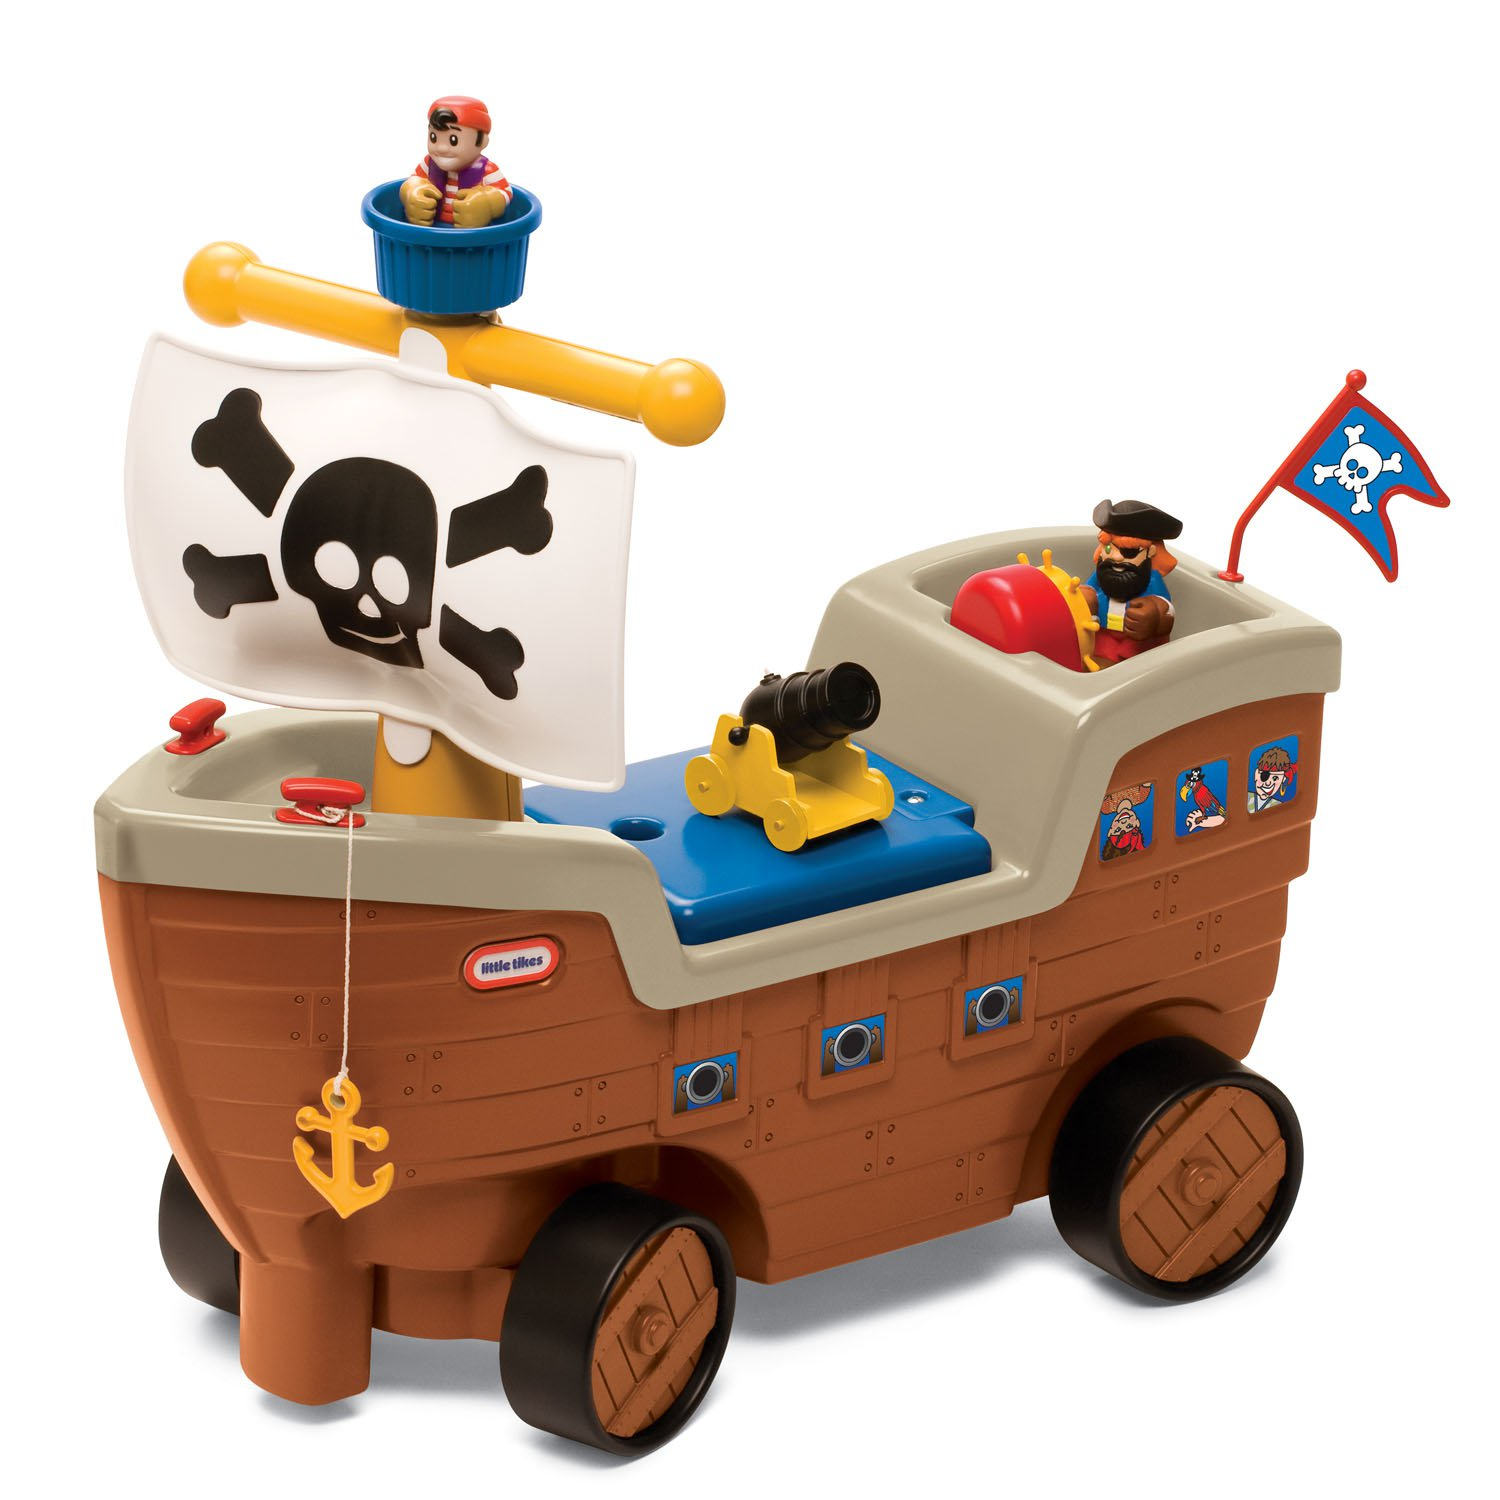 Little Tikes Pirate Bed | Twin Size Pirate Ship Bed | Pirate Ship Bedroom